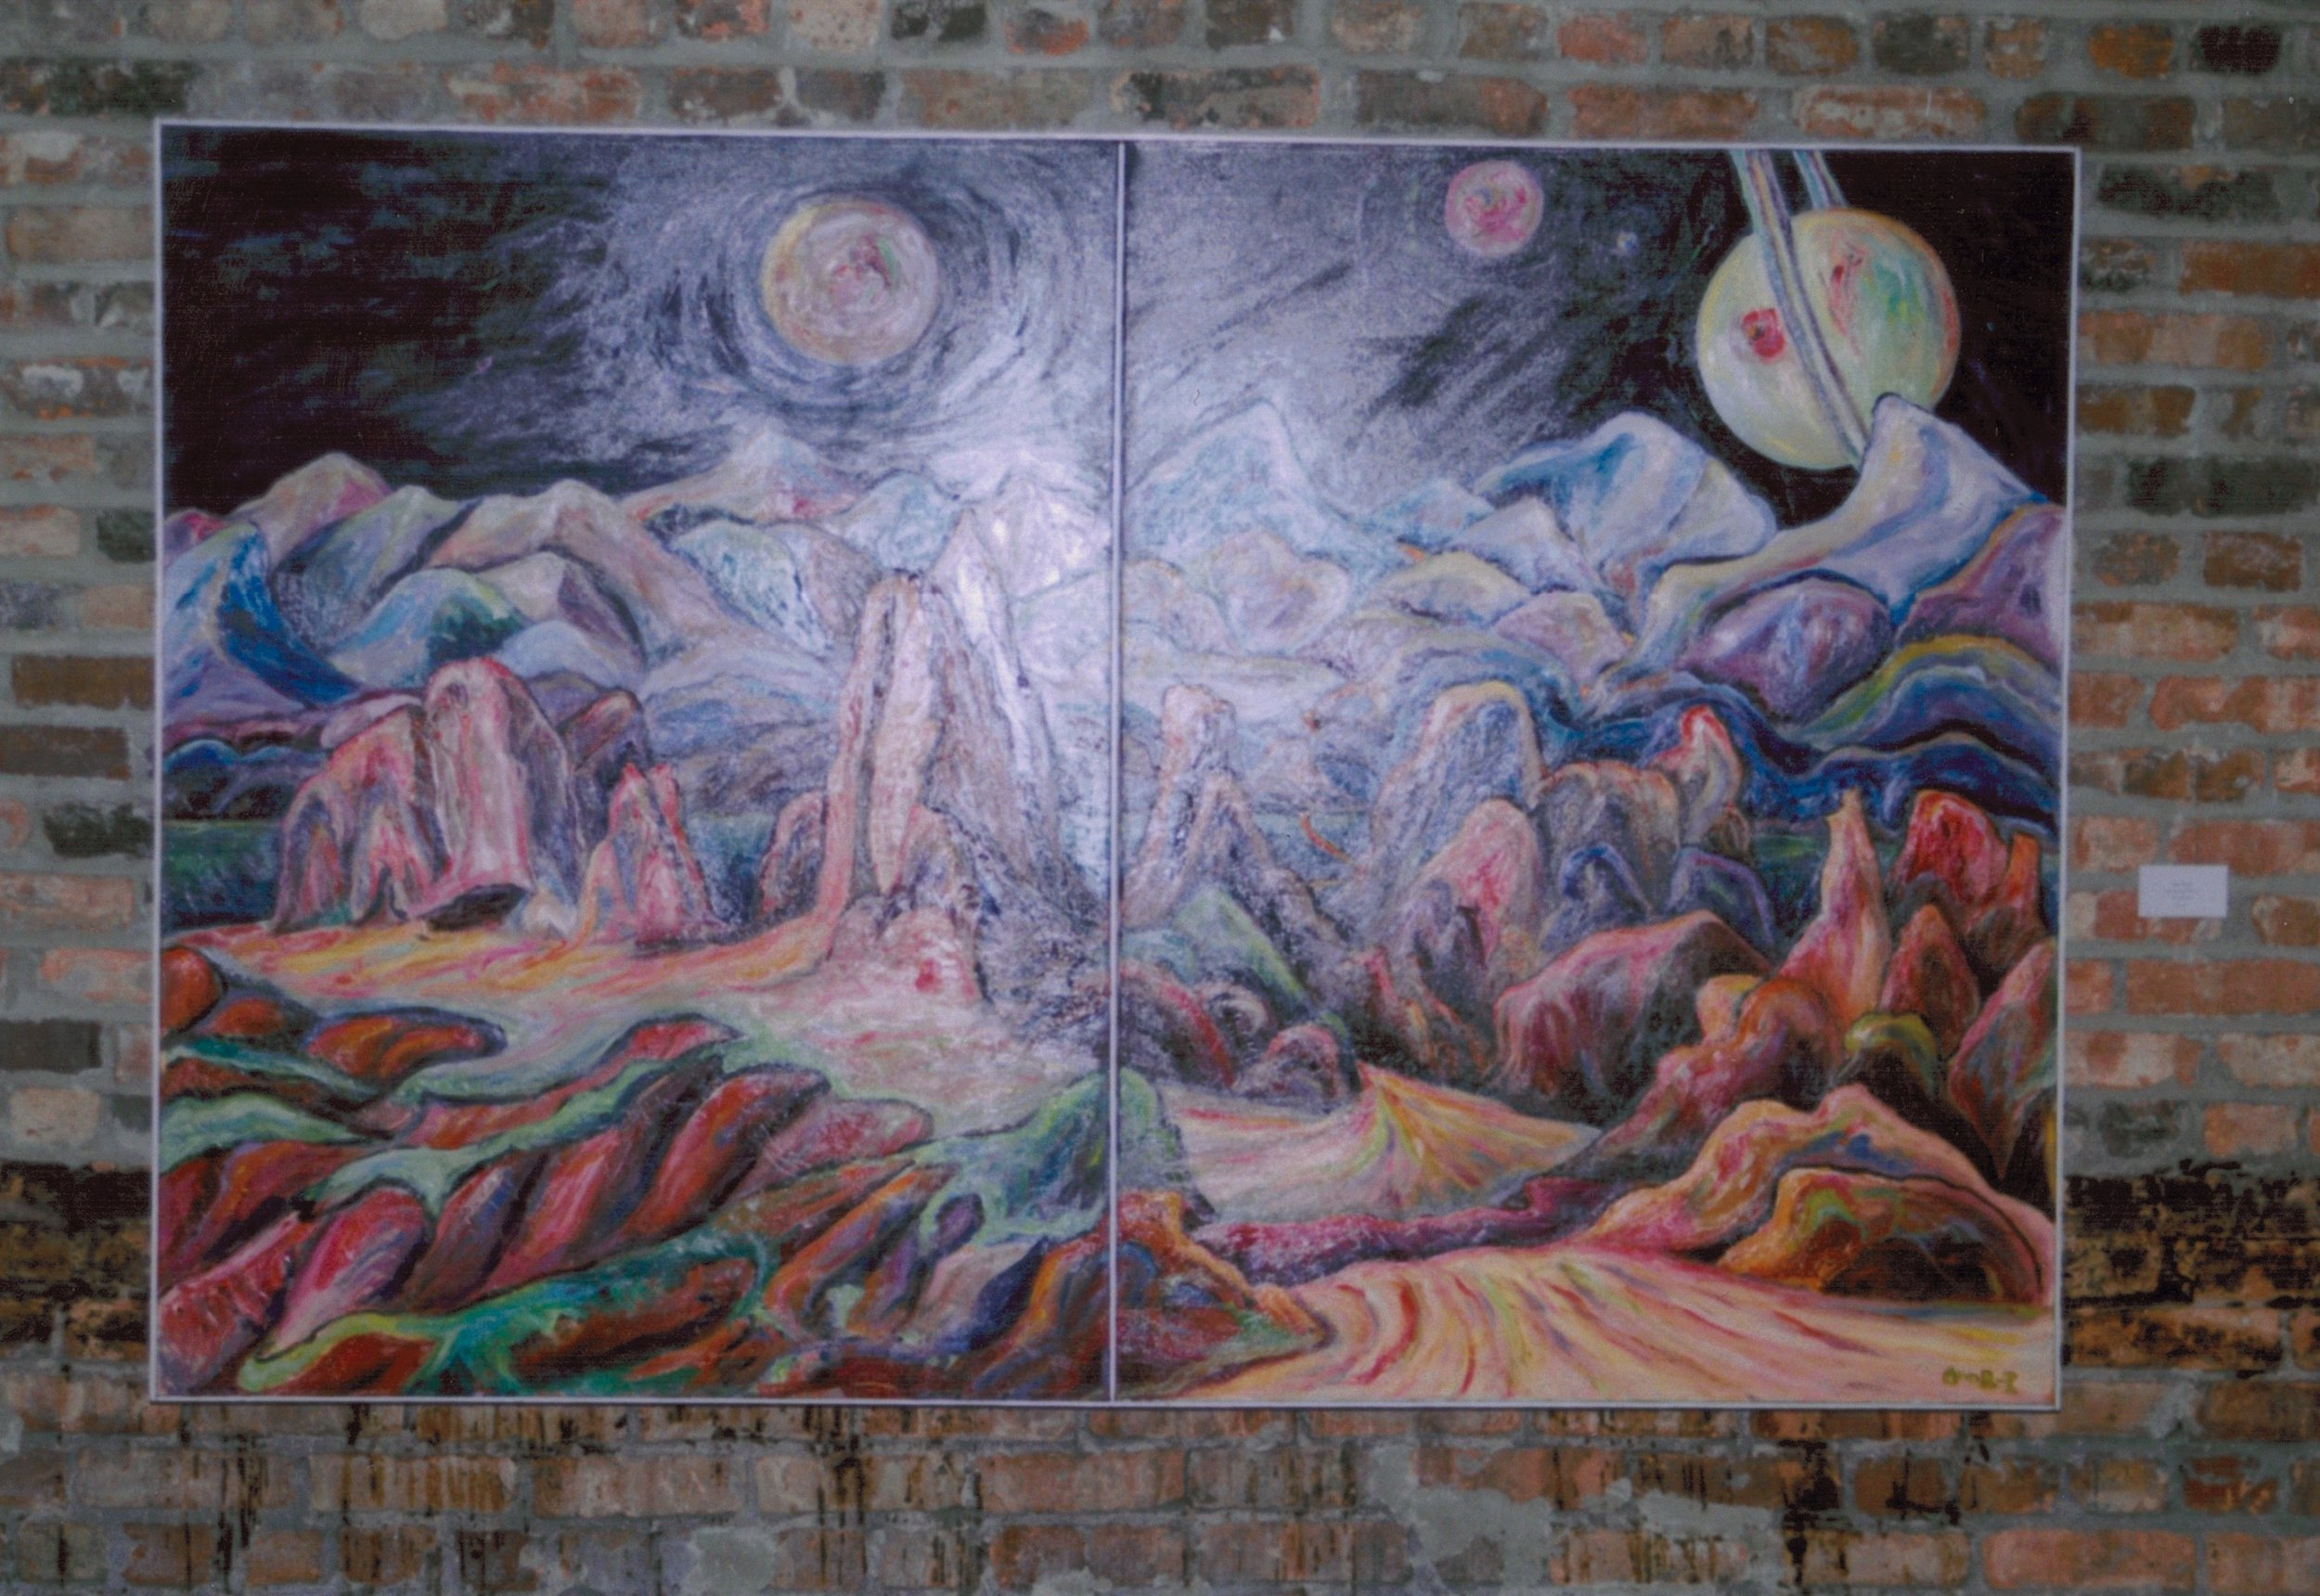 Image of Painting in the original space